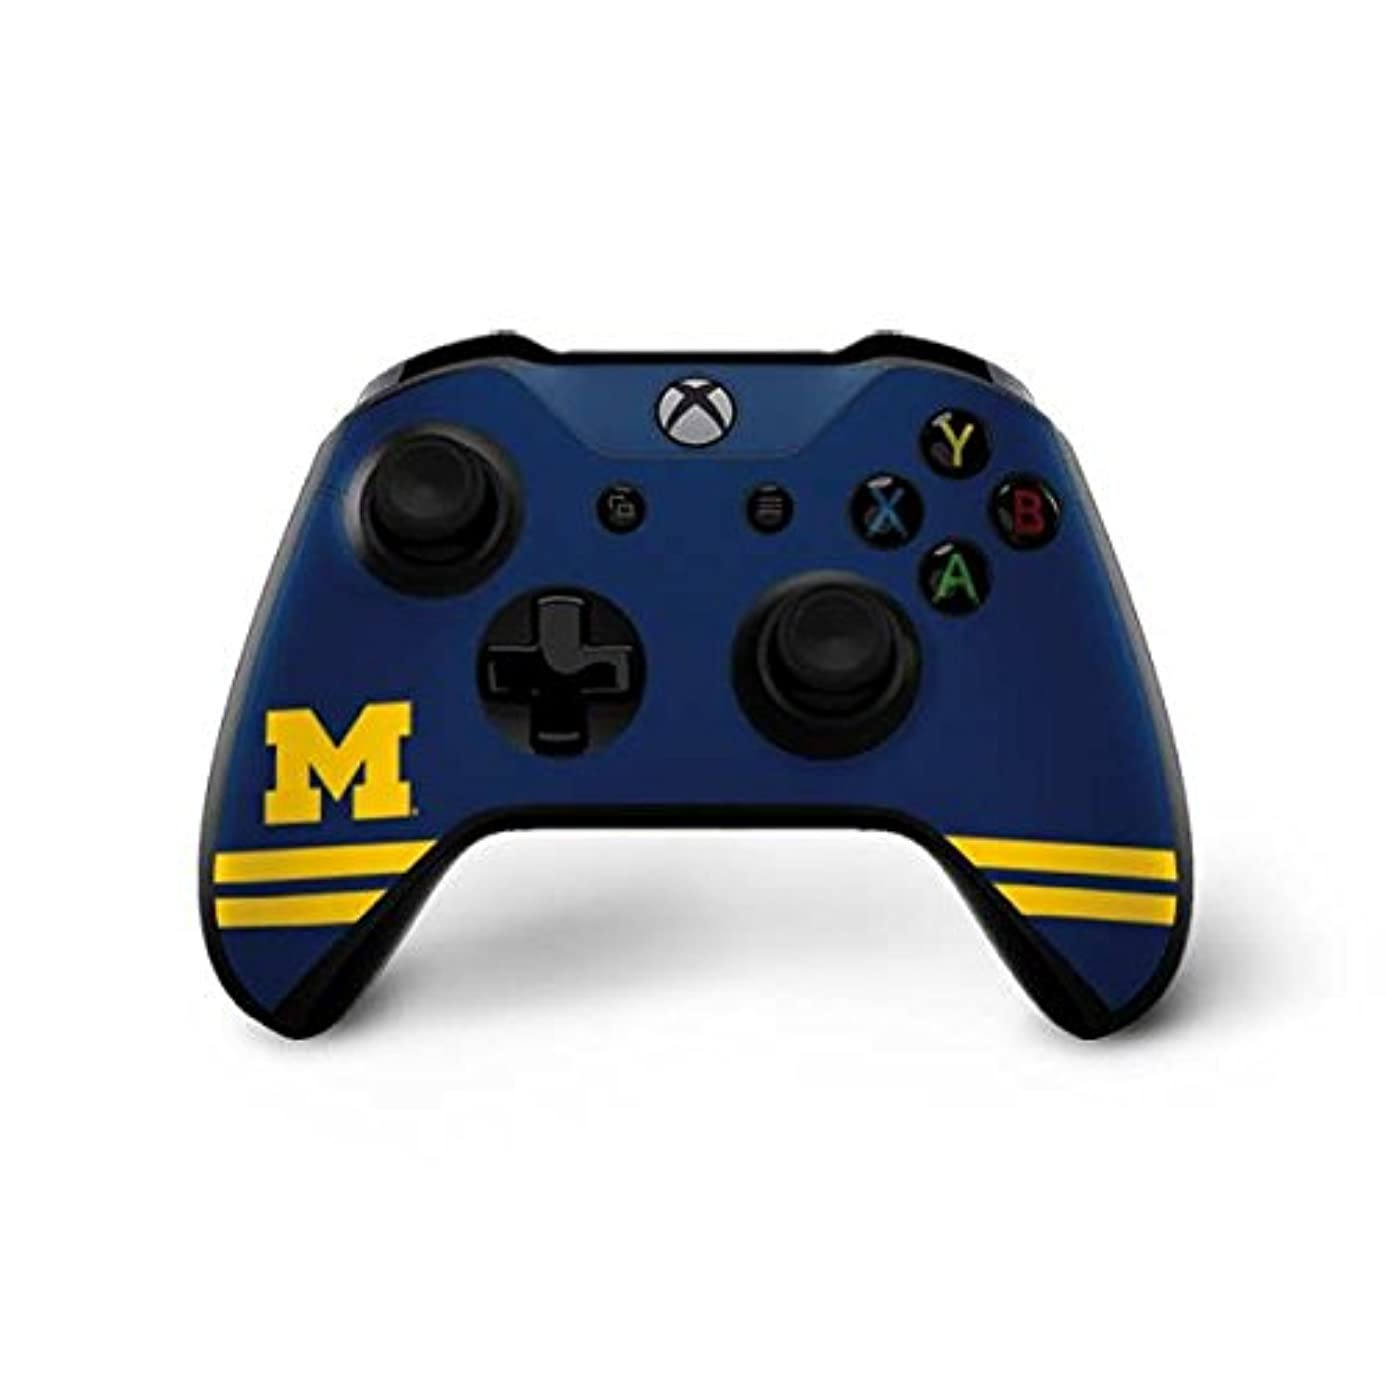 Skinit Michigan Logo Striped Xbox One X Controller Skin - Officially Licensed College Gaming Decal - Ultra Thin, Lightweight Vinyl Decal Protection